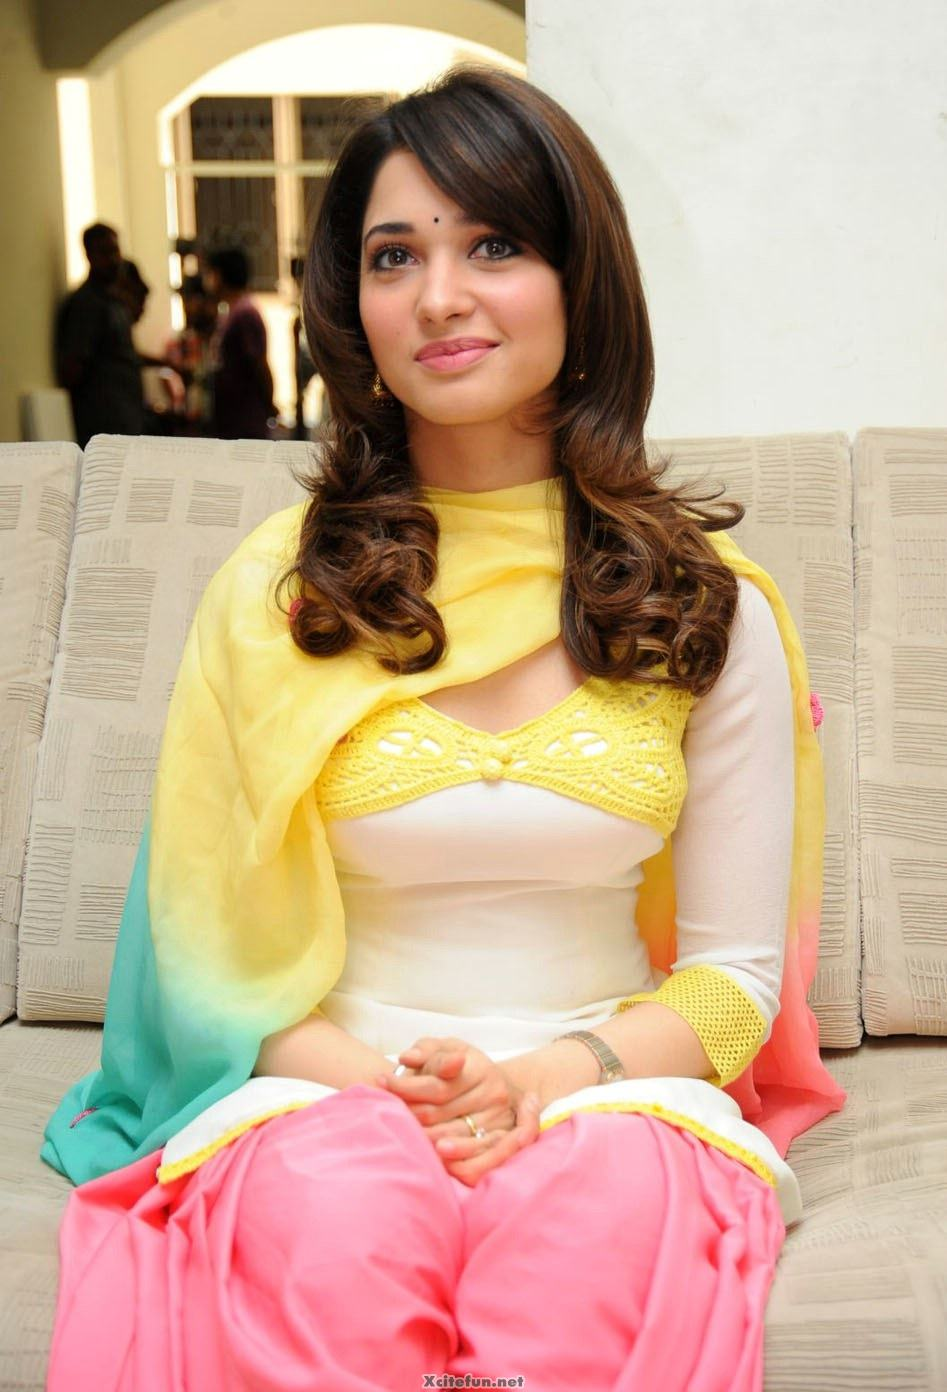 Cute Sweet Wallpapers For Phone Cute And Naughty Indian Actress Tamanna Xcitefun Net